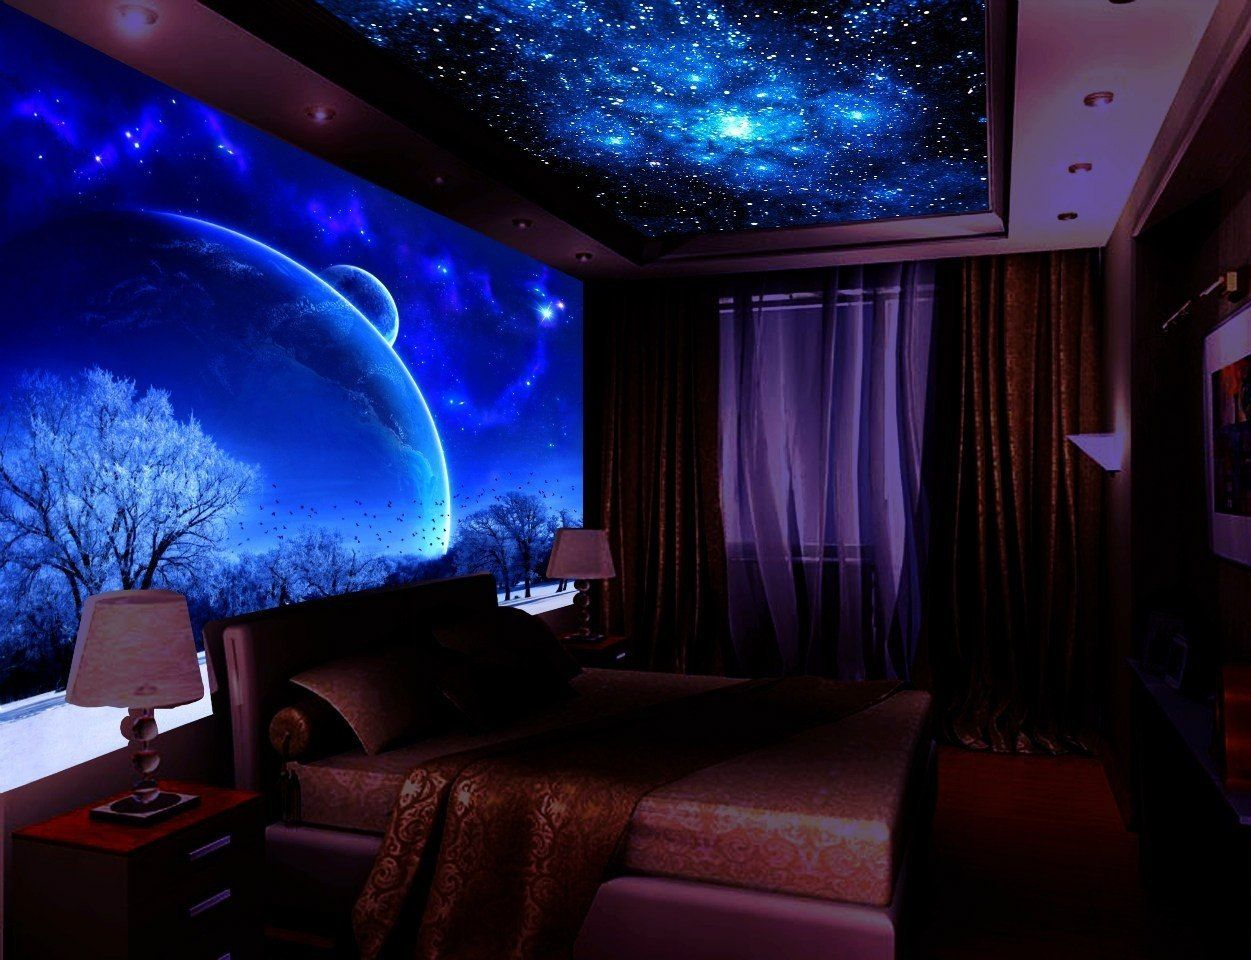 Playing With Home Cinema Lighting System Wallpaper House Design